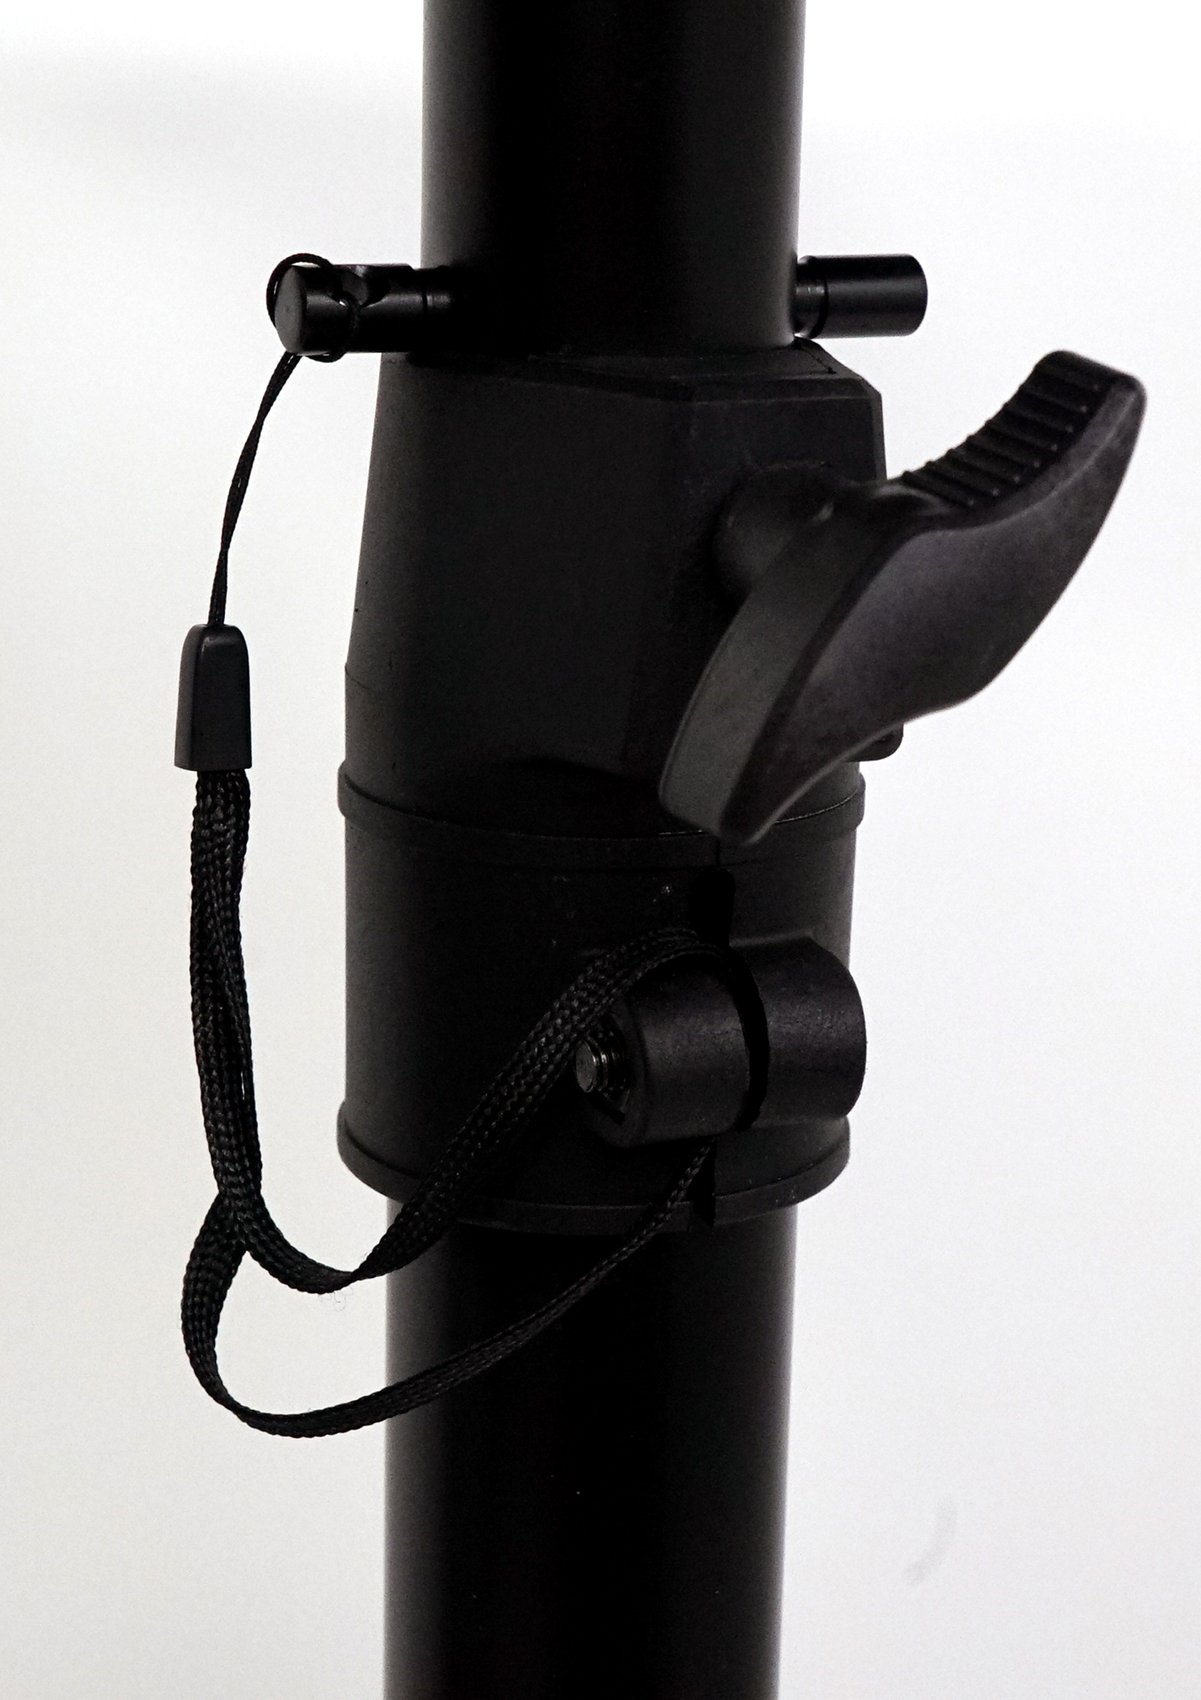 Rockville RVSM1 Pair of Near-Field Studio Monitor Stands w/Adjustable Height by Rockville (Image #7)